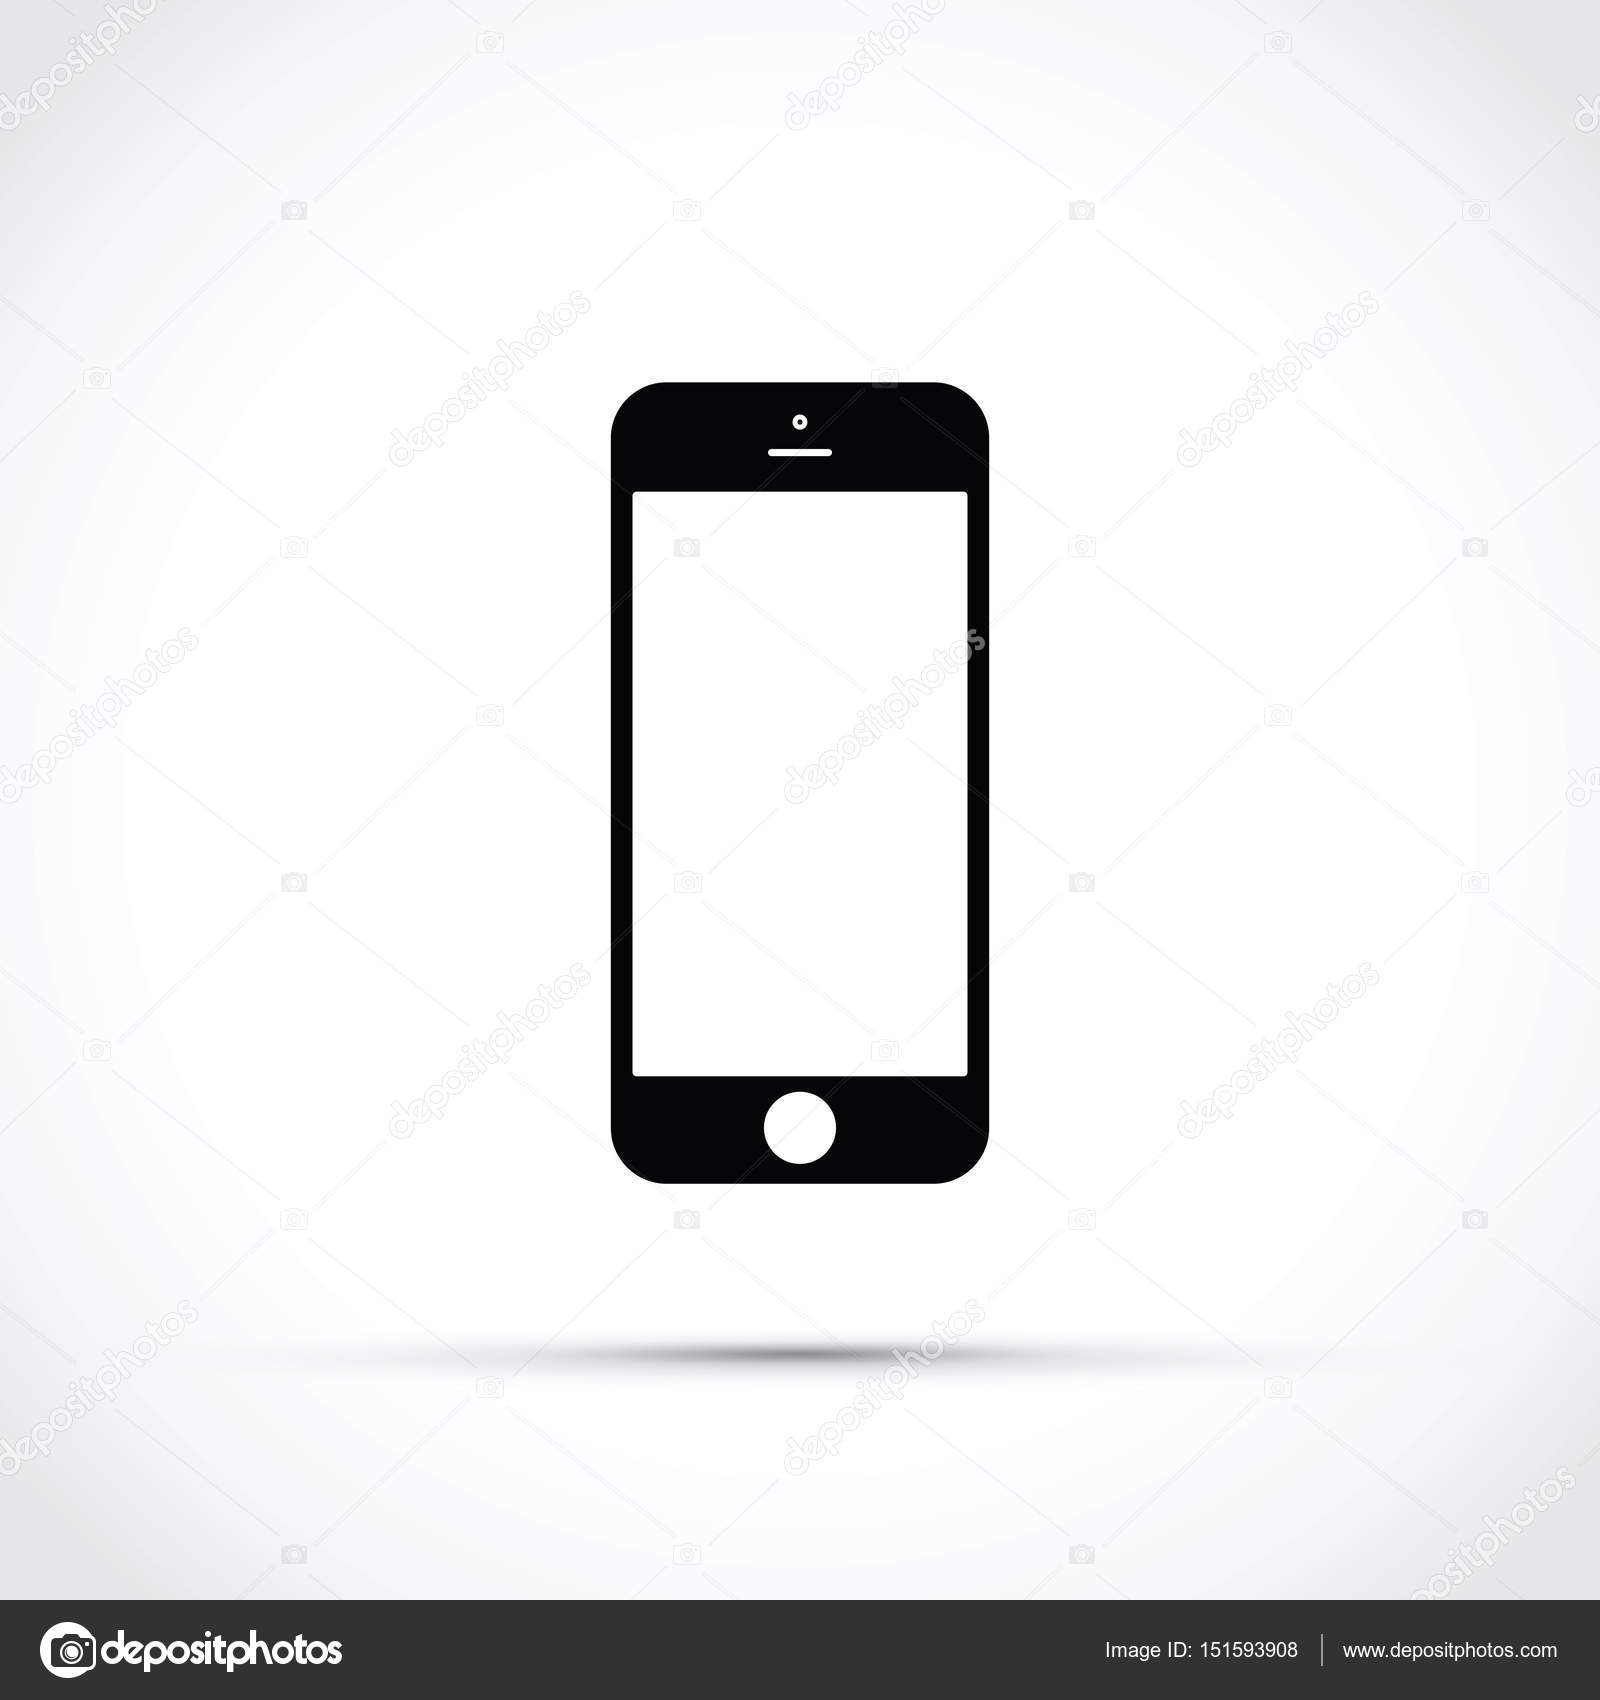 Cell Phone Icon >> Mobile Phone Cell Phone Icon Stock Vector C Jameschipper